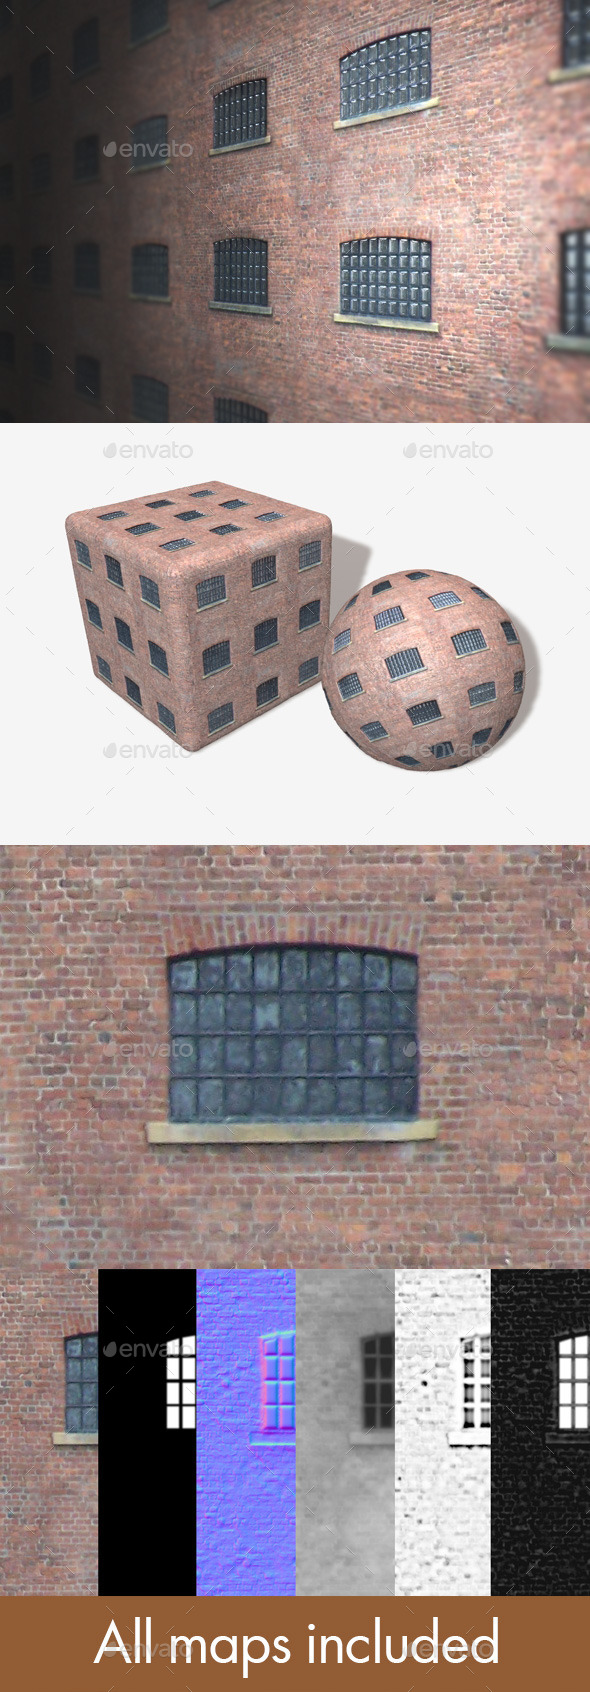 Old Building Seamless Texture - 3DOcean Item for Sale